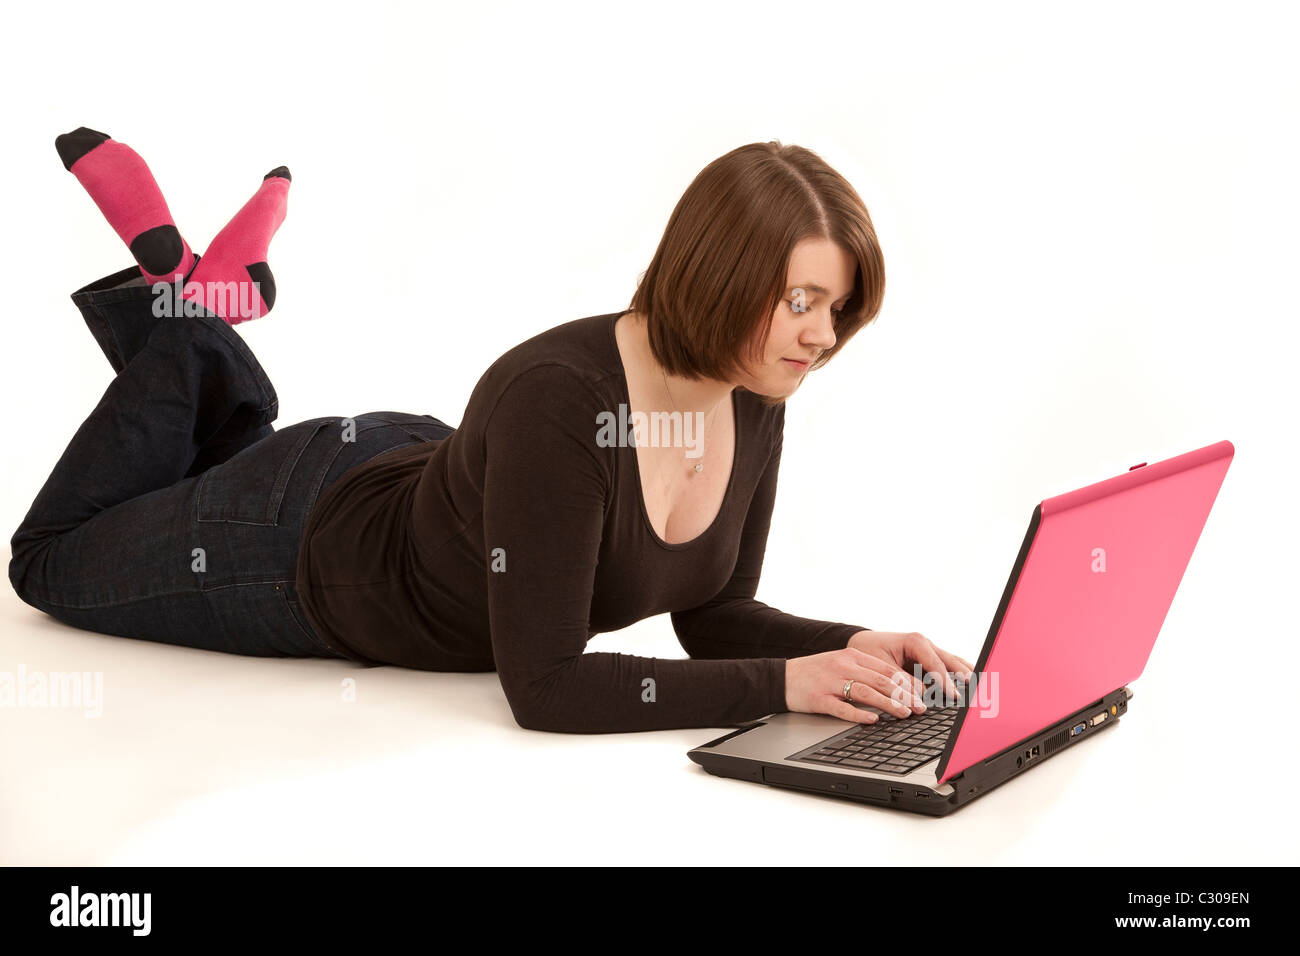 A young woman in her twenties lying on a white back ground using a laptop - Stock Image